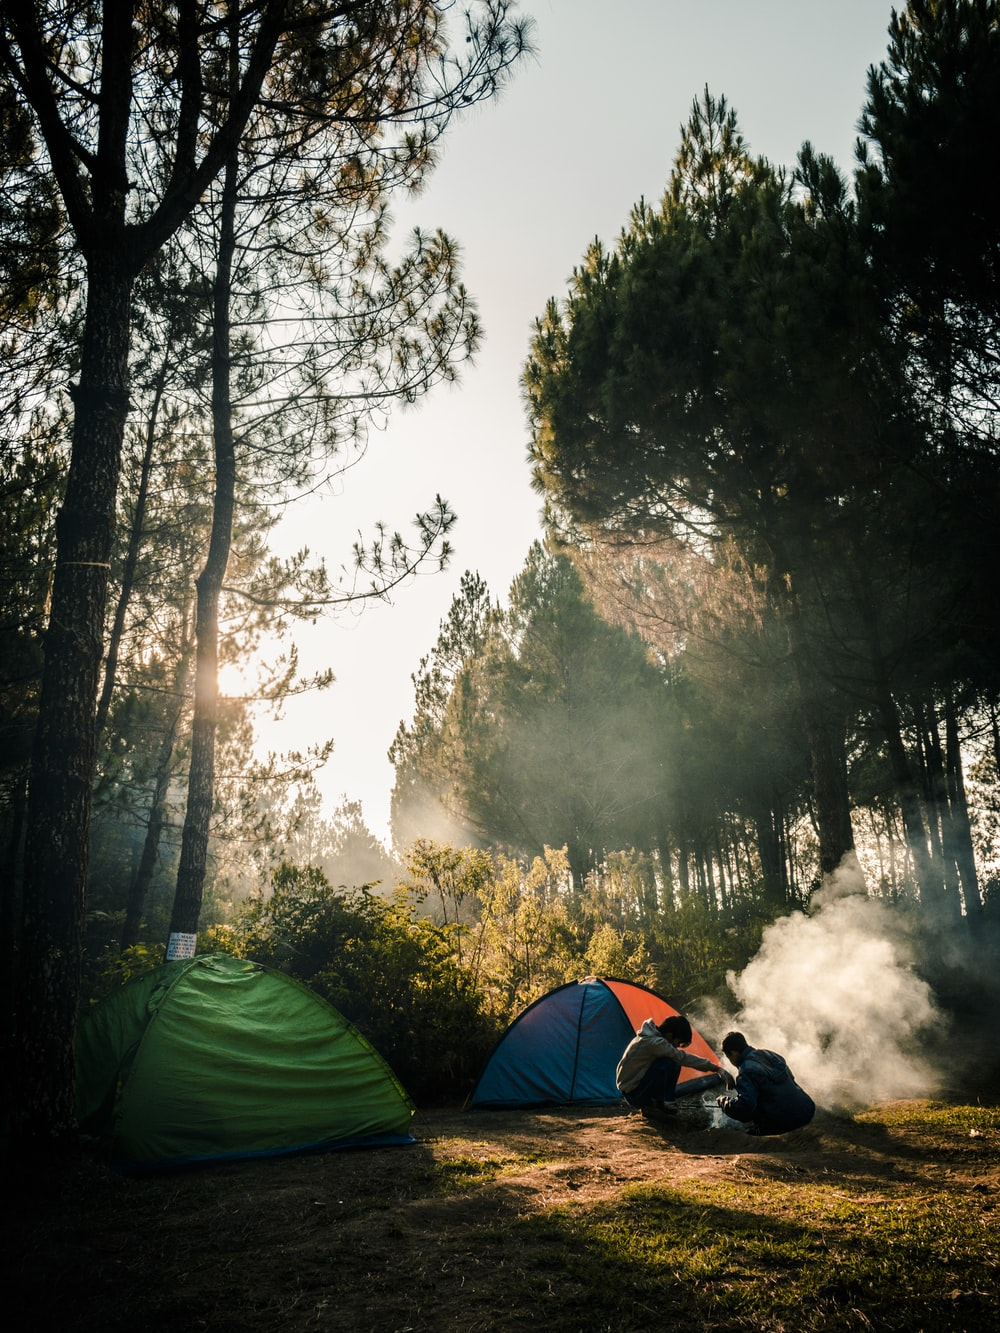 two persons sitting near two camping tents in the woods